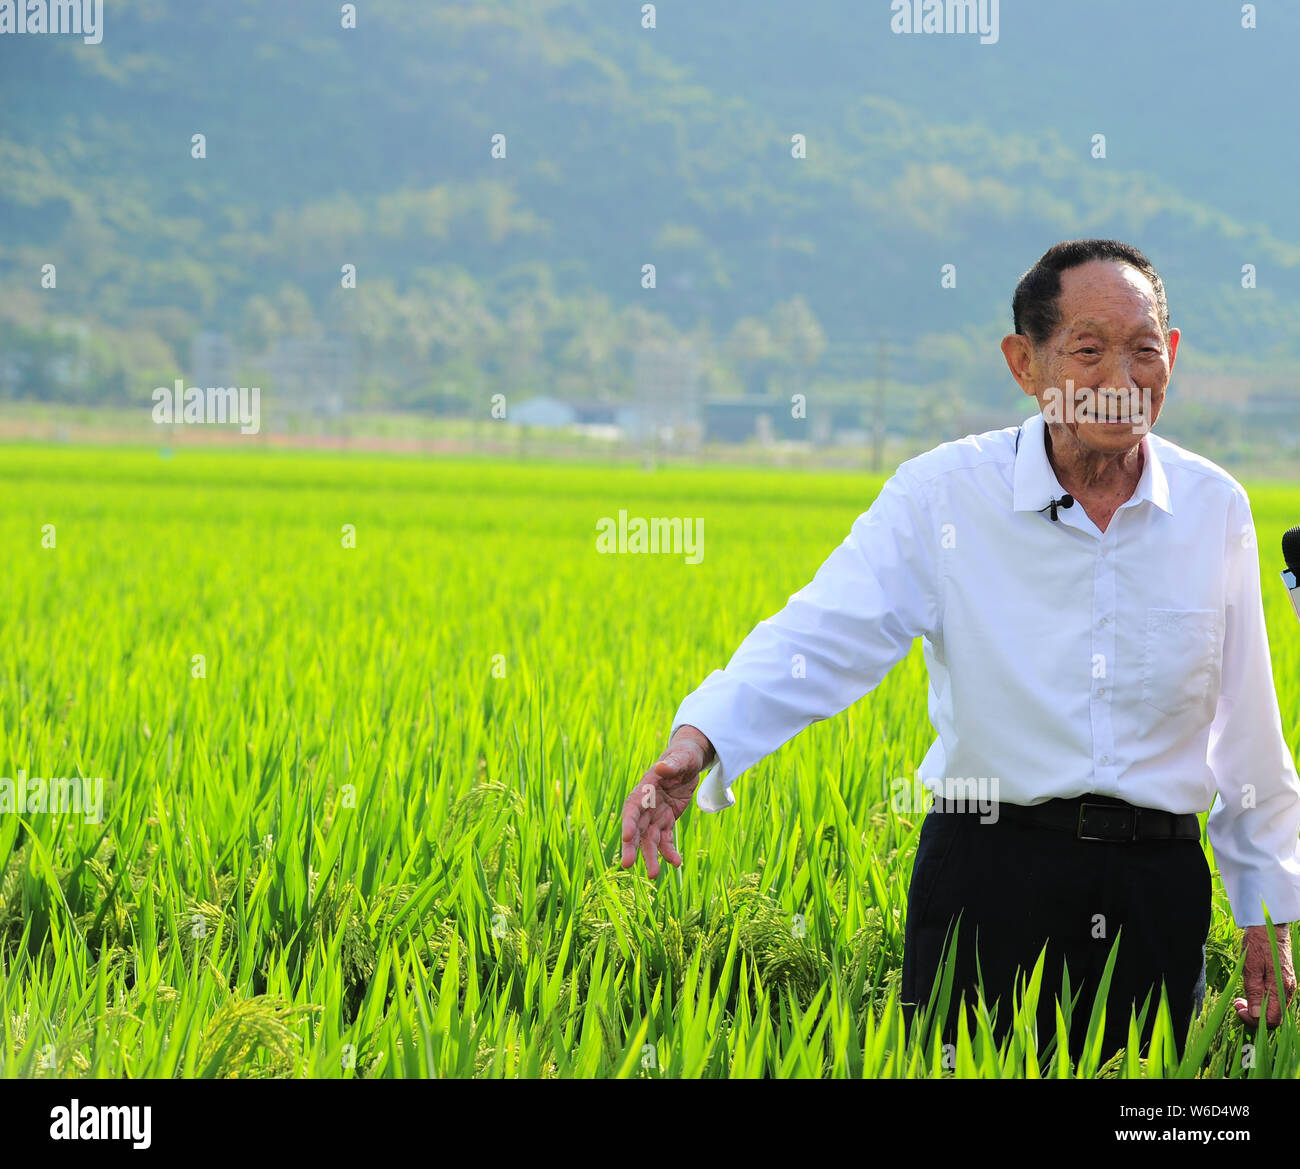 Chinese agricultural scientist and educator Yuan Longping, known for developing the first hybrid rice varieties in the 1970s, is interviewed by a jour Stock Photo